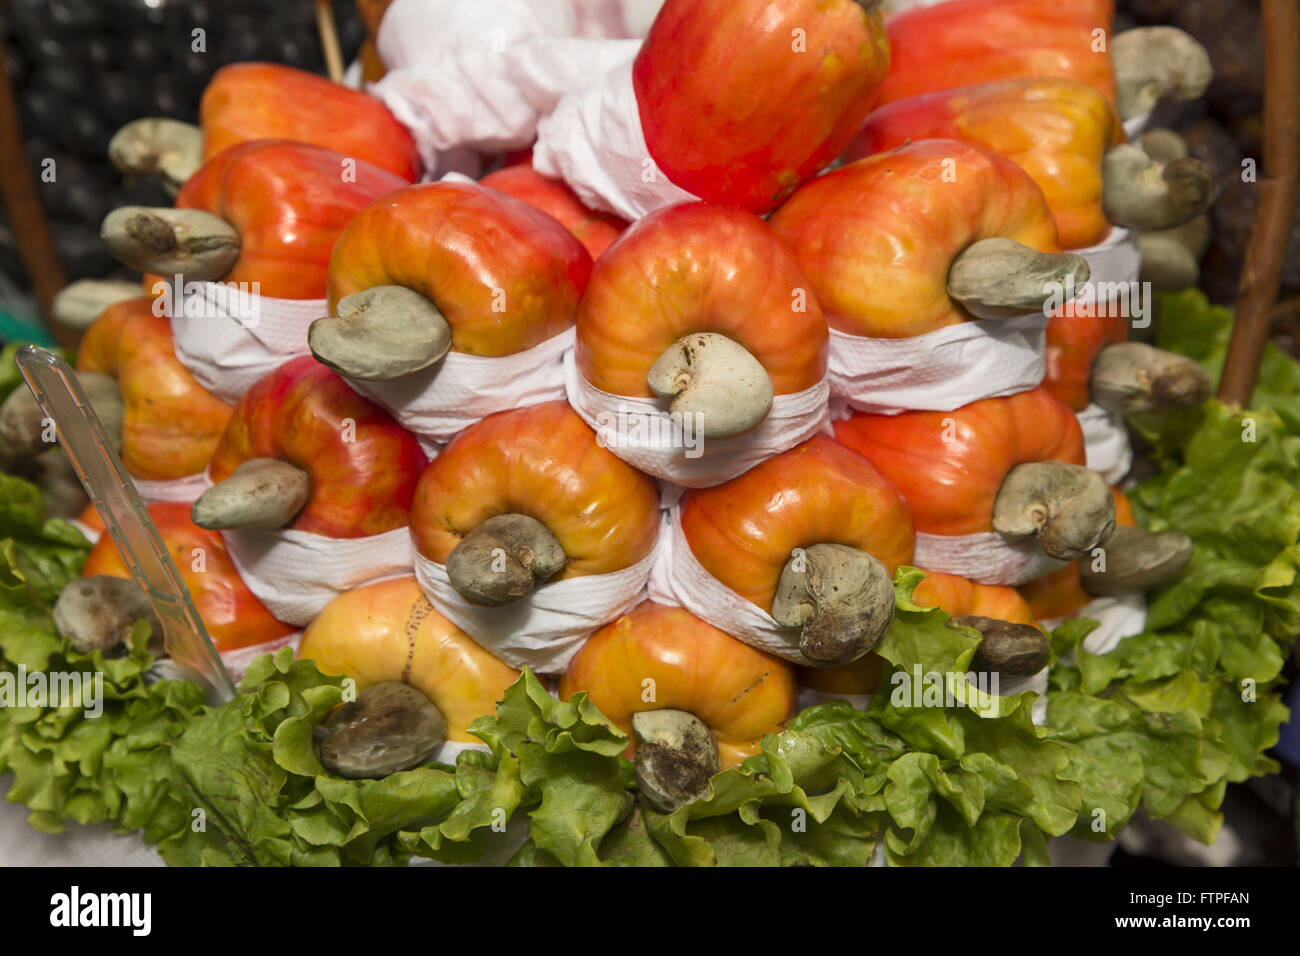 Cashews to the Public Market of Sao Paulo - Stock Image